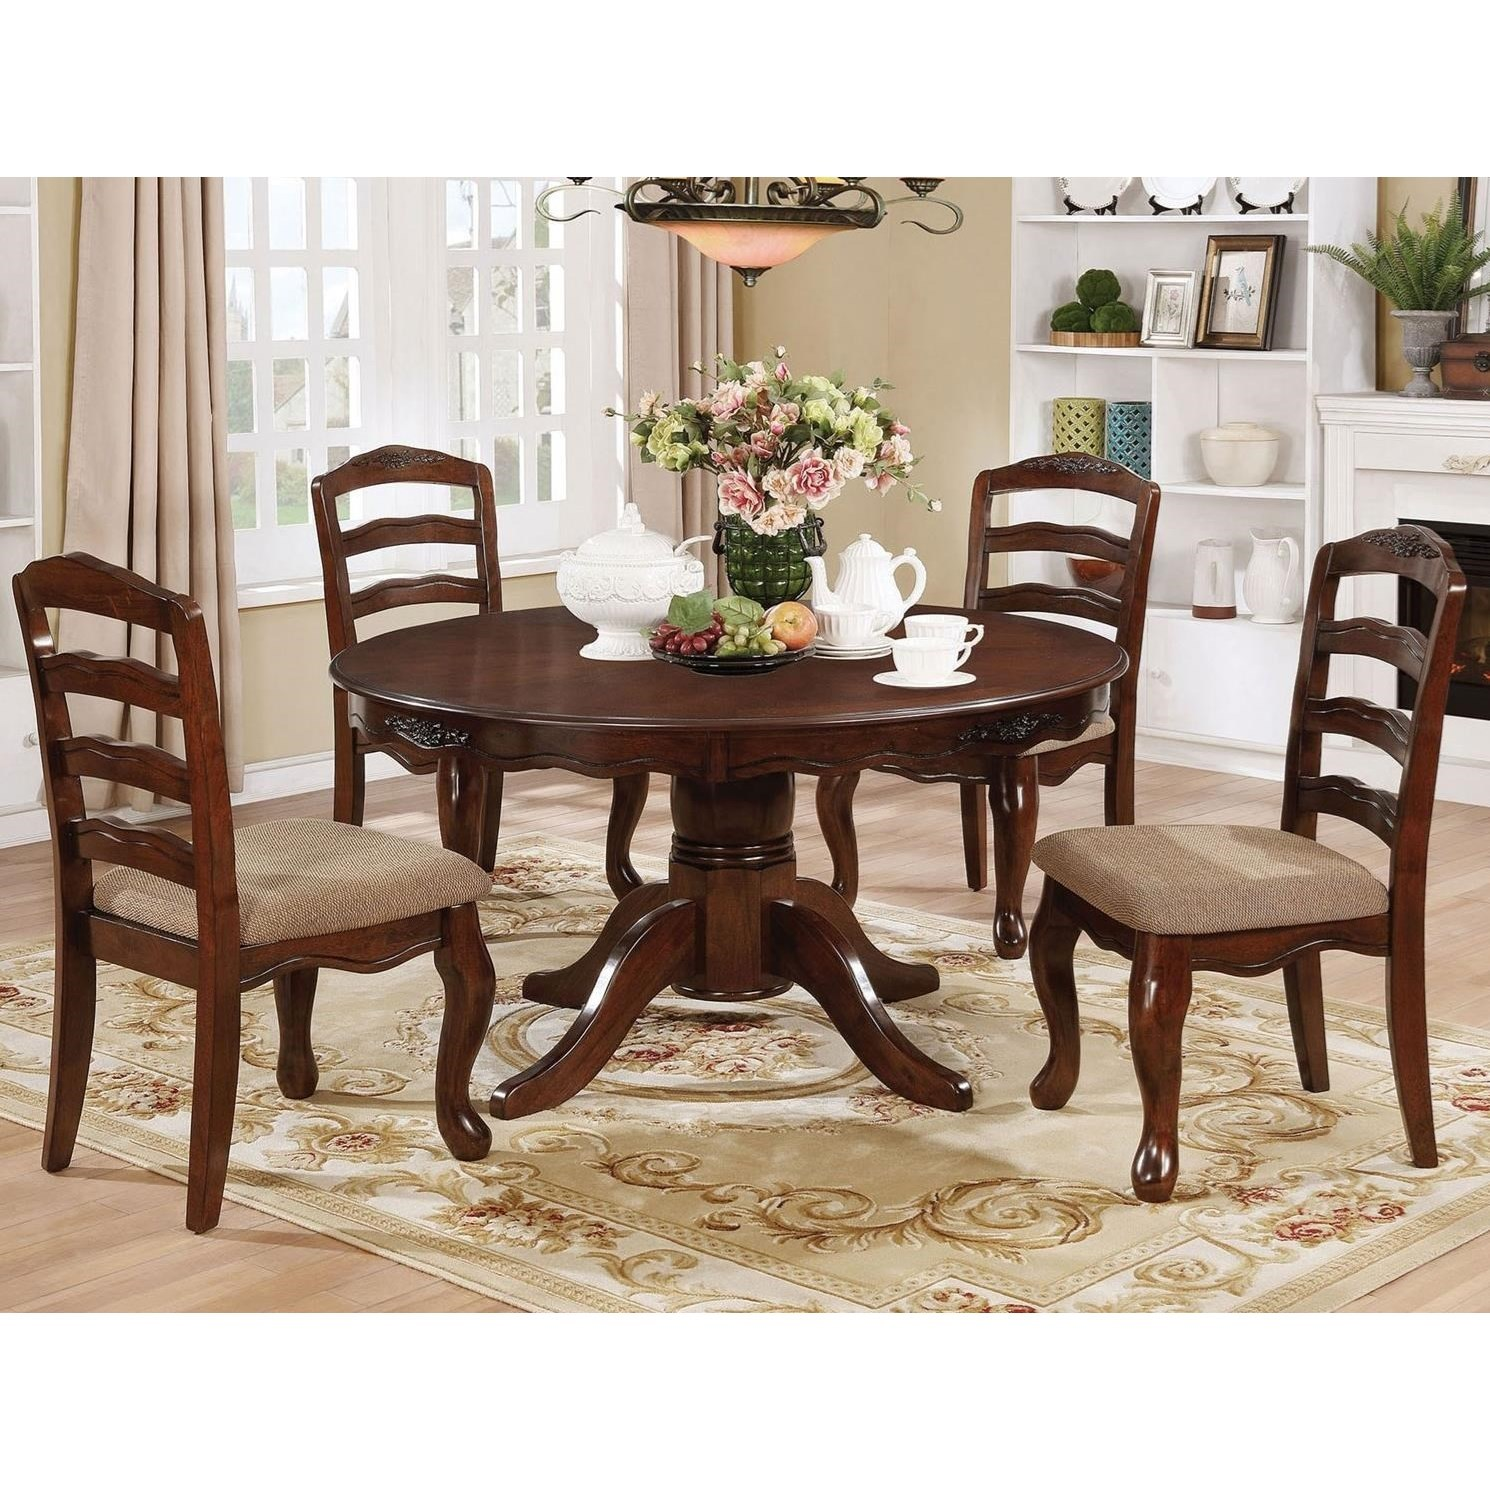 Furniture Of America Townsville Cm3109t 5pc Traditional 5 Piece Dining Set With Round Table Corner Furniture Dining 5 Piece Sets - Outdoor Furniture Clearance Townsville